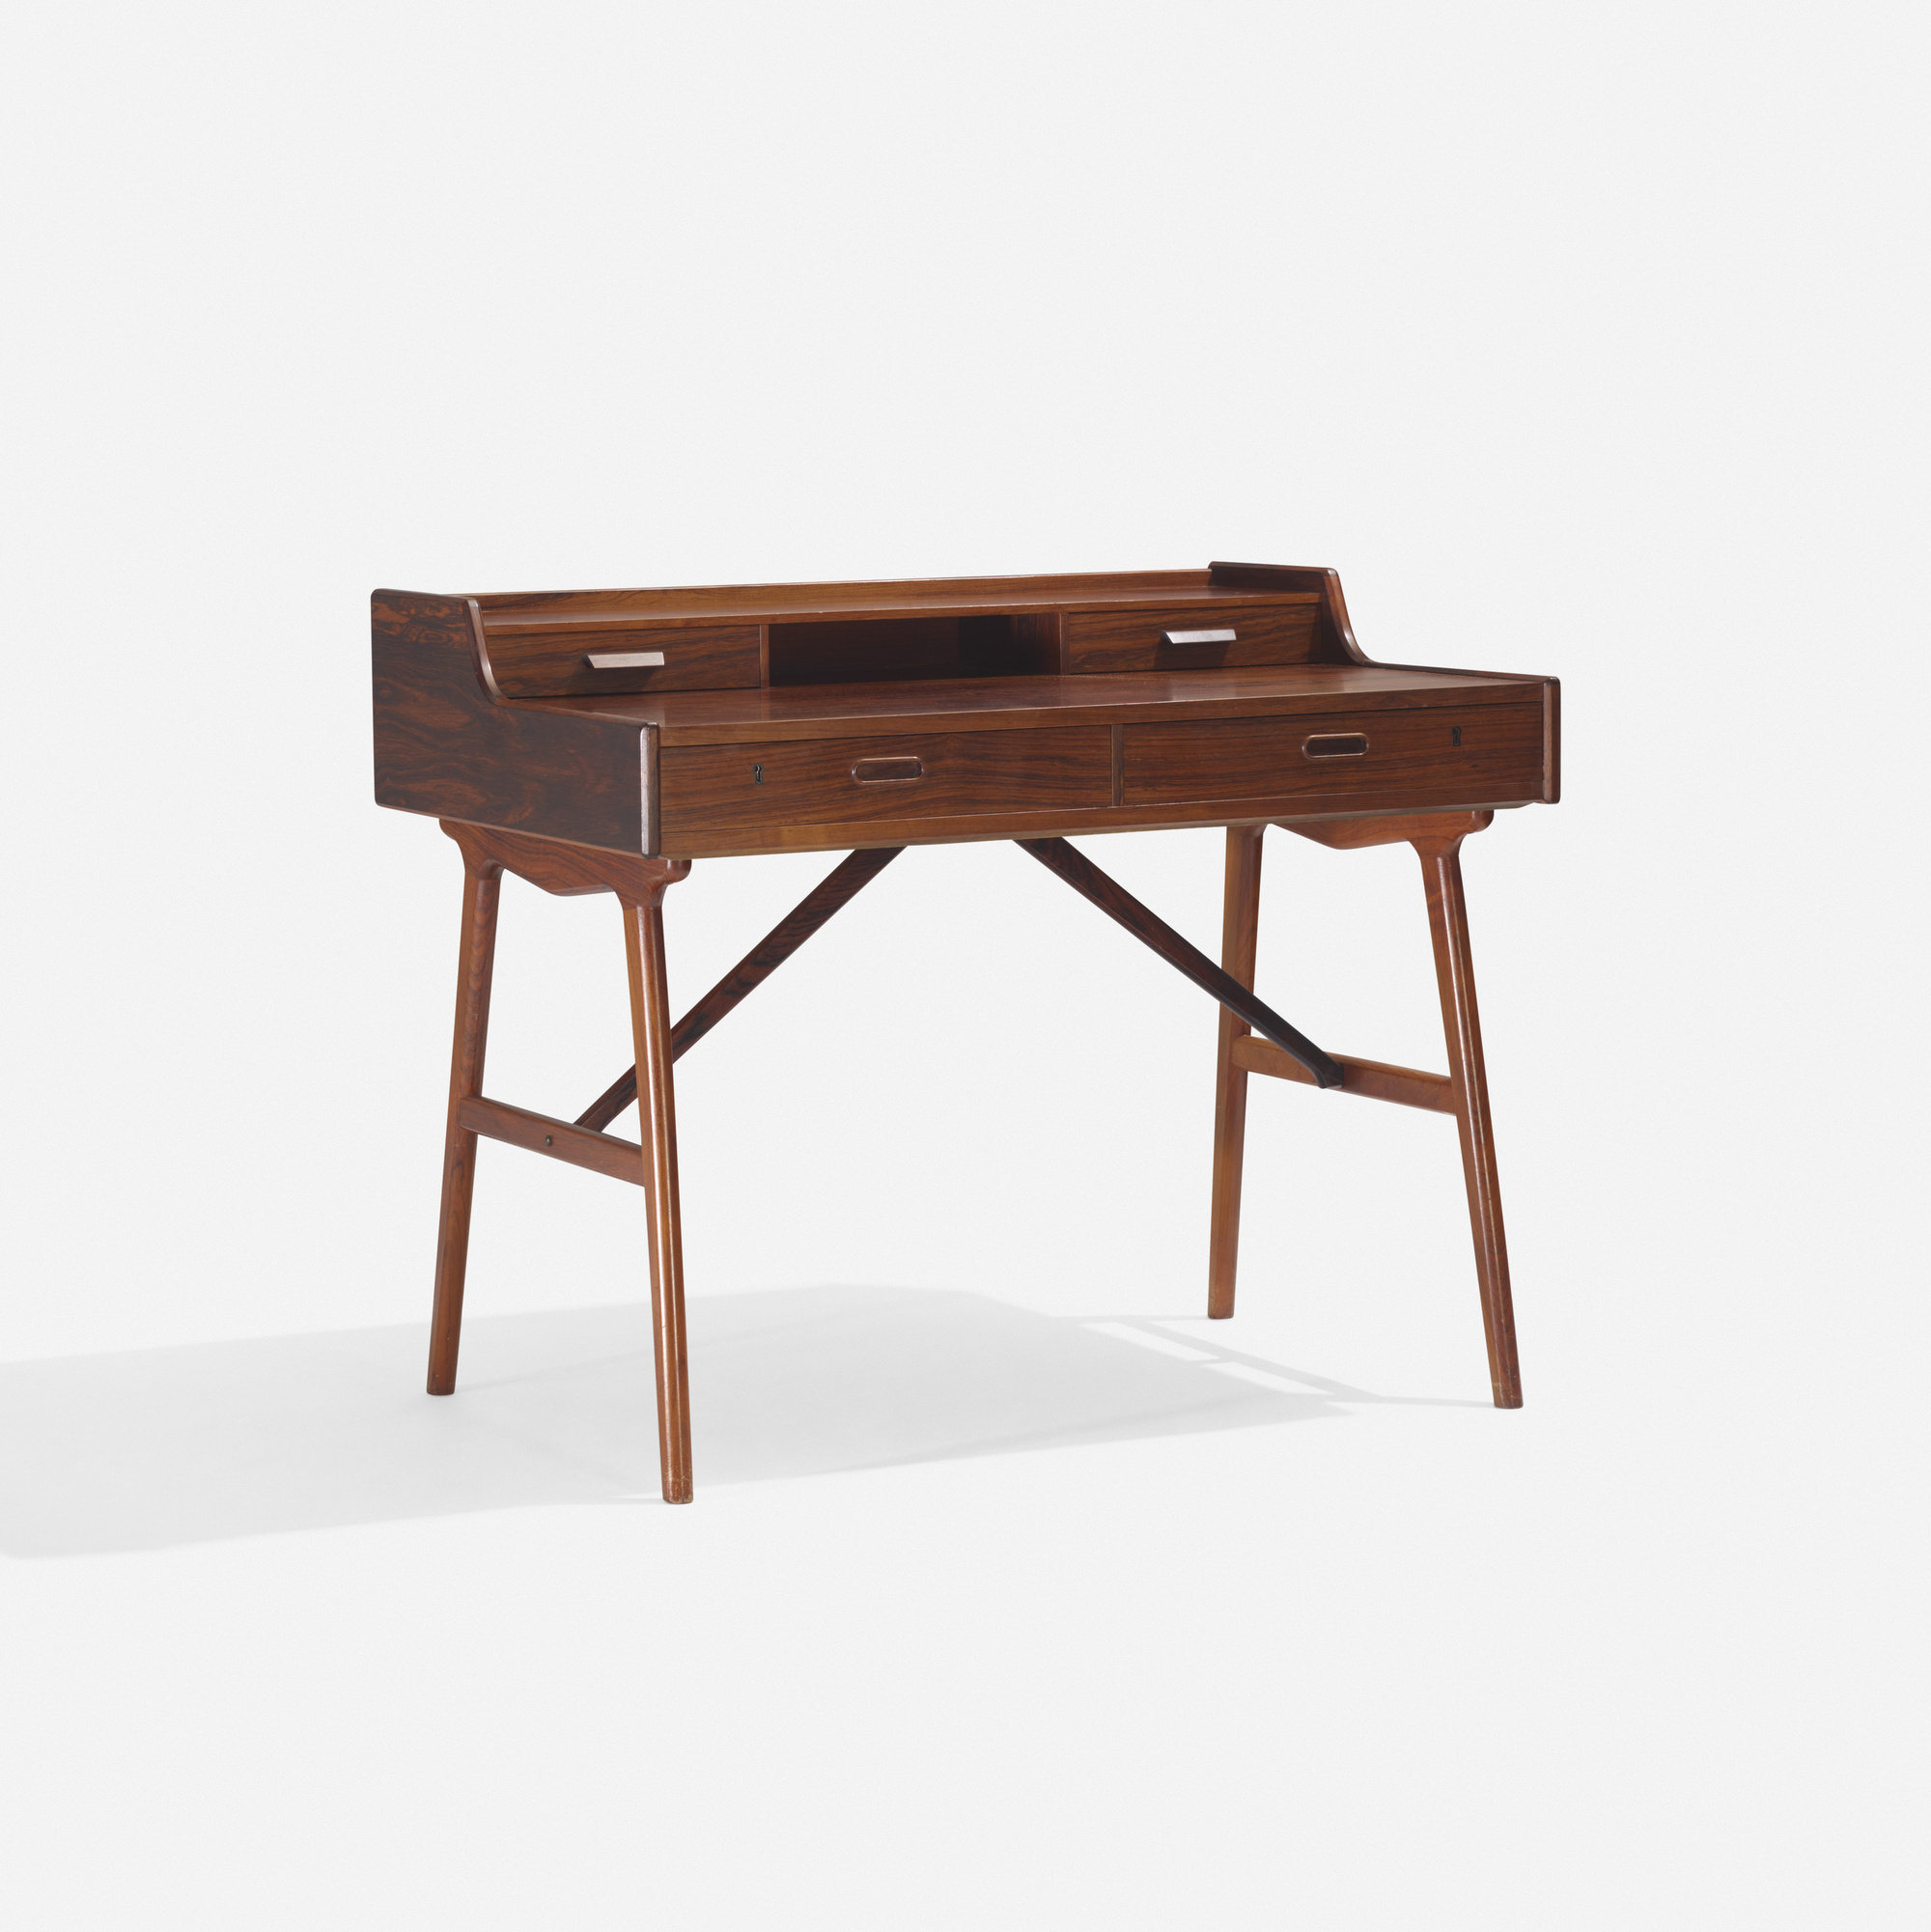 266: Arne Wahl Iversen / desk (1 of 3)